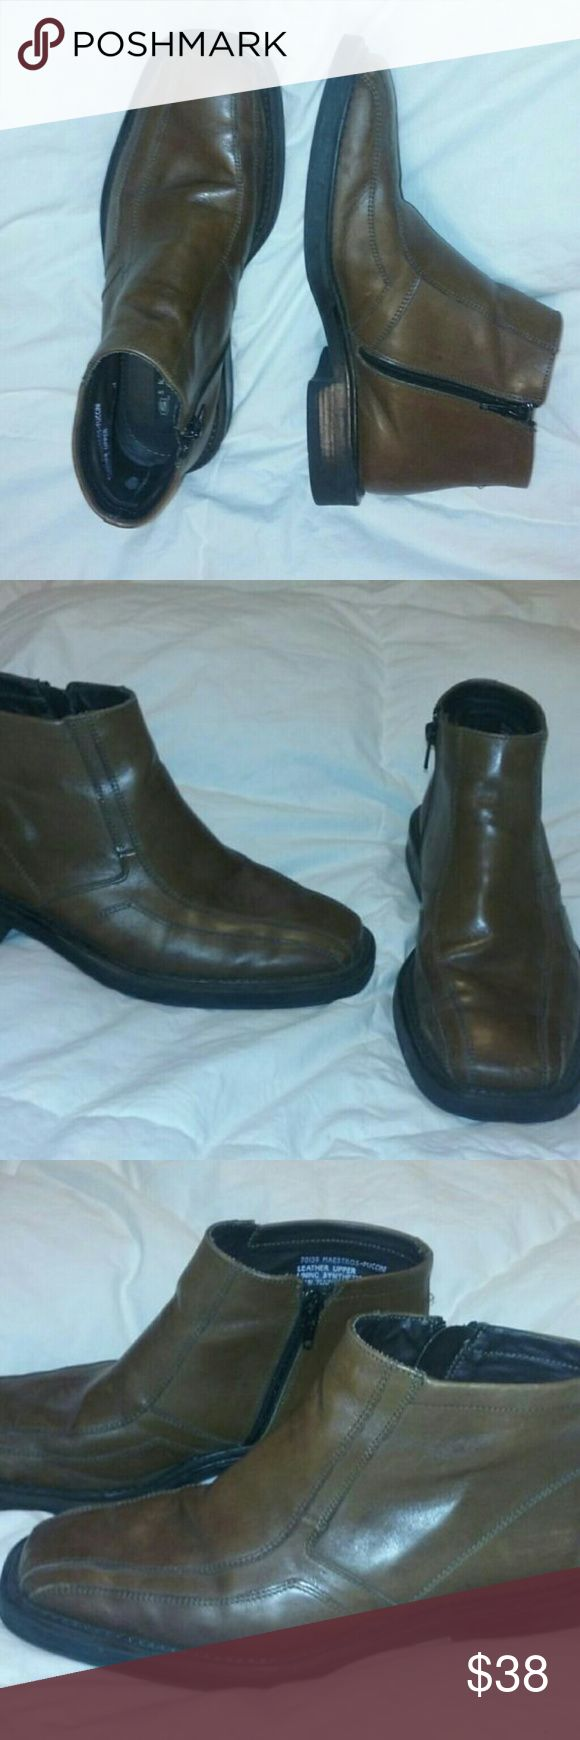 Skechers Ankle Boots Brown Leather Mens Sz 8.5 Skechers Collection Ankle Boots Brown Leather Mens Size 8.5  Very good, clean condition.  Bit scuffing at front.  Otherwise great.  Genuine leather upper.  Super sharp! Skechers Shoes Boots